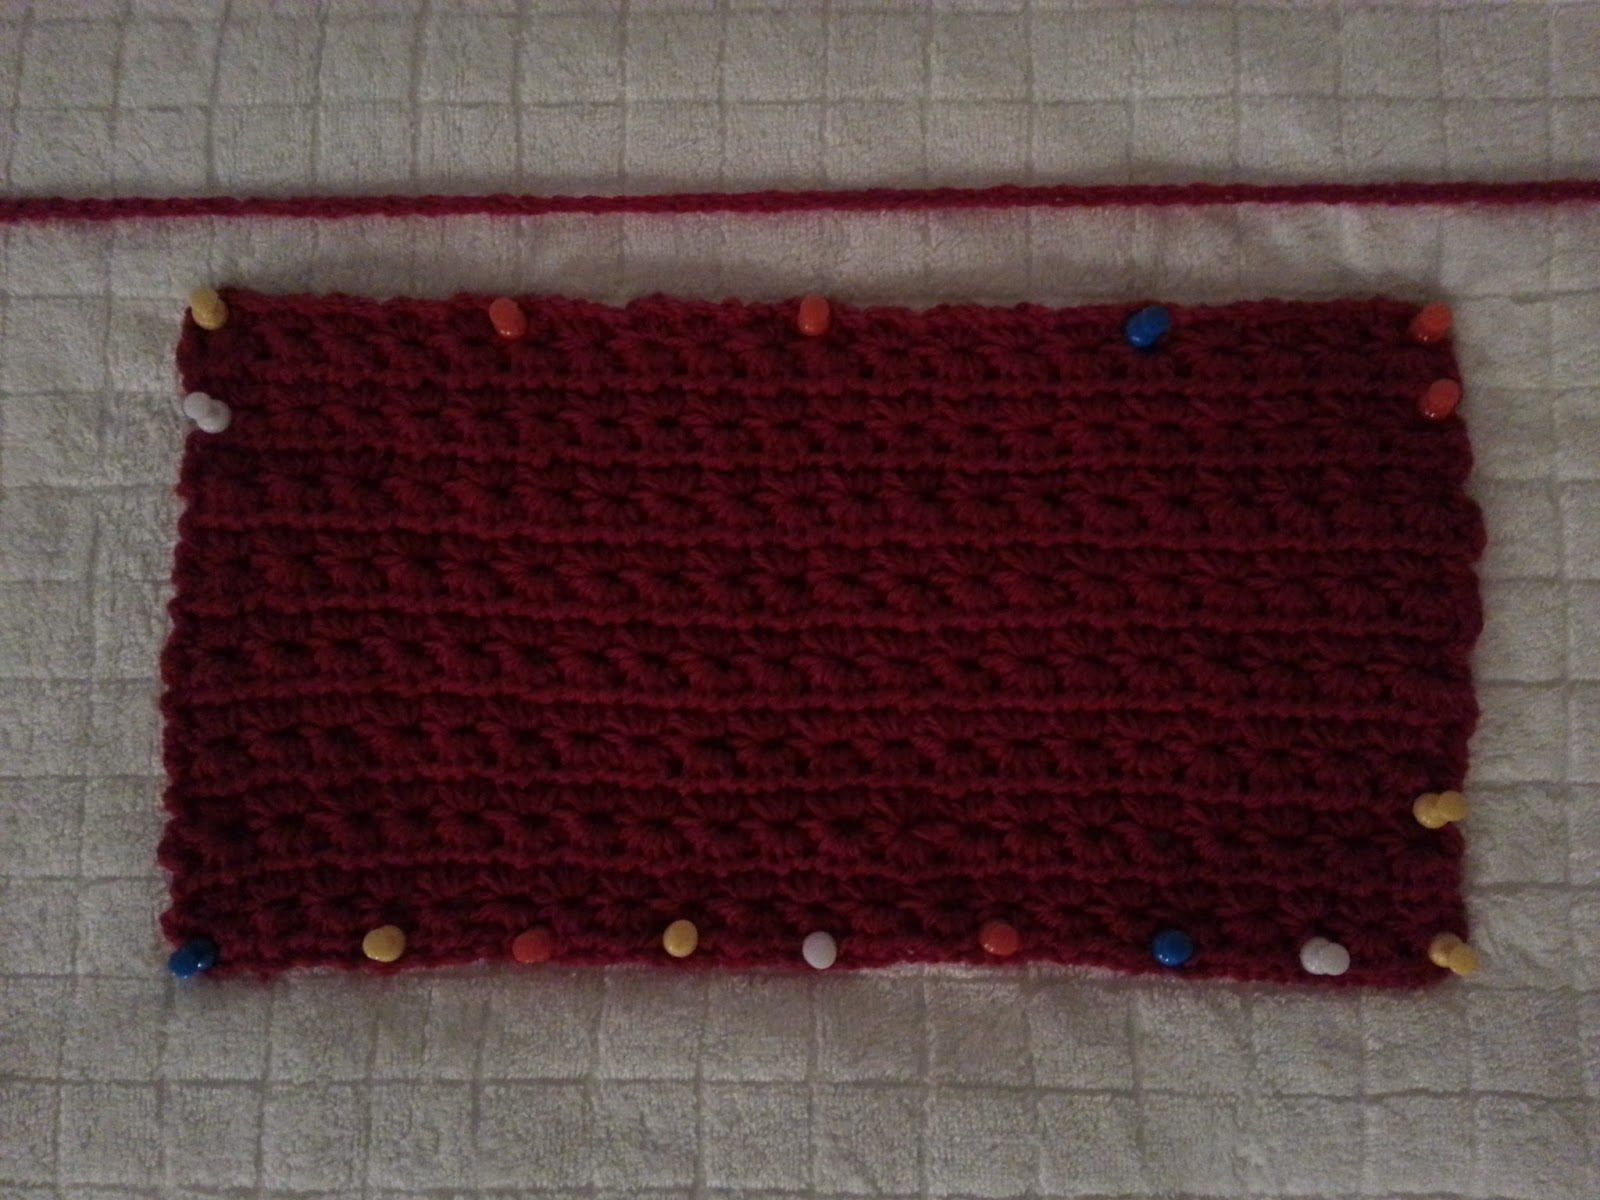 Free Crochet Star Hook Case Pattern : Crochet by Conroy: Finished: Roll Up Star Hook Case